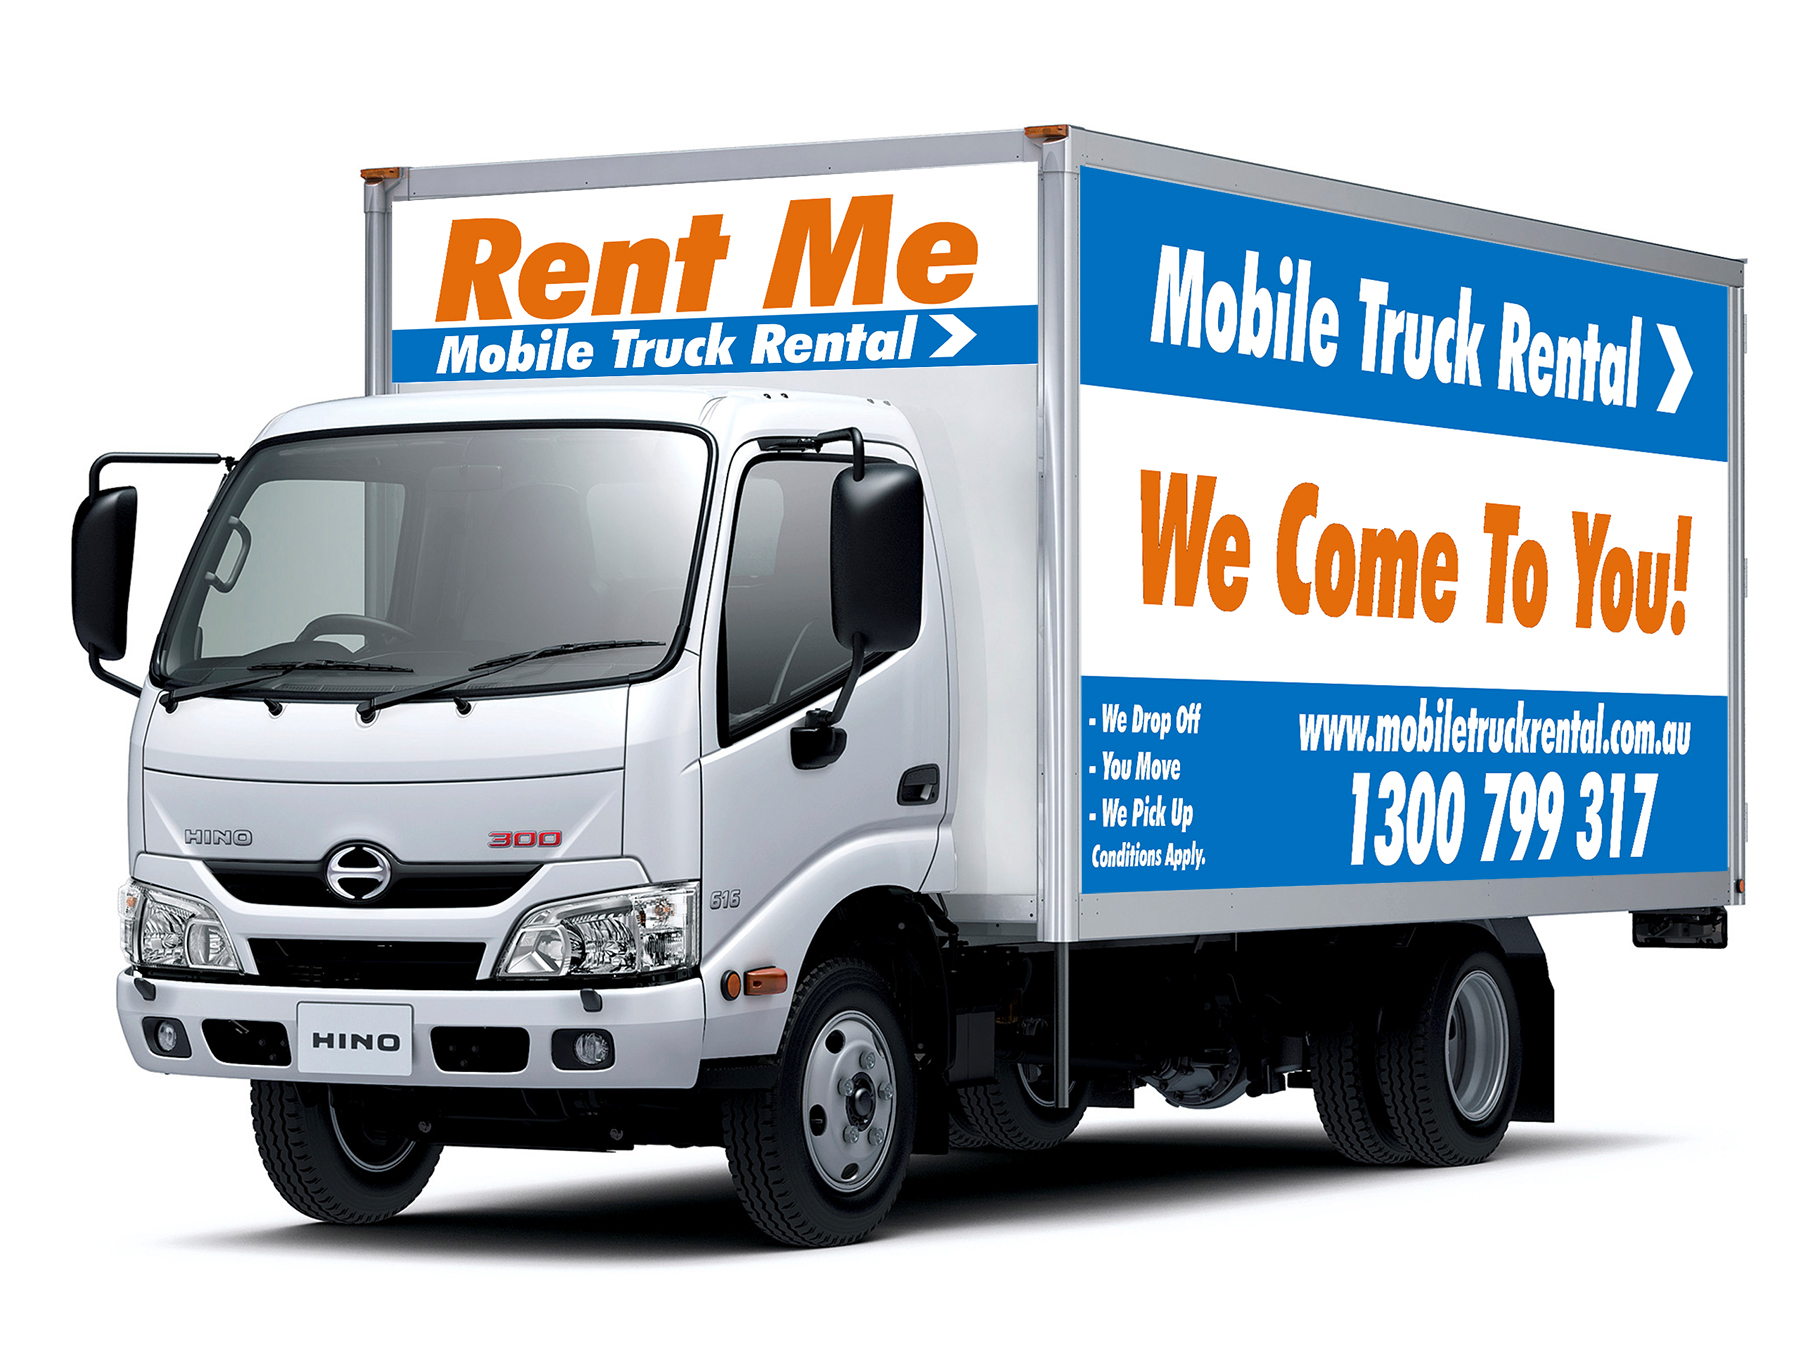 Whether you need to rent a truck for a move, a weekend project or commercial use, you'll be sure to find the right vehicle at Enterprise.